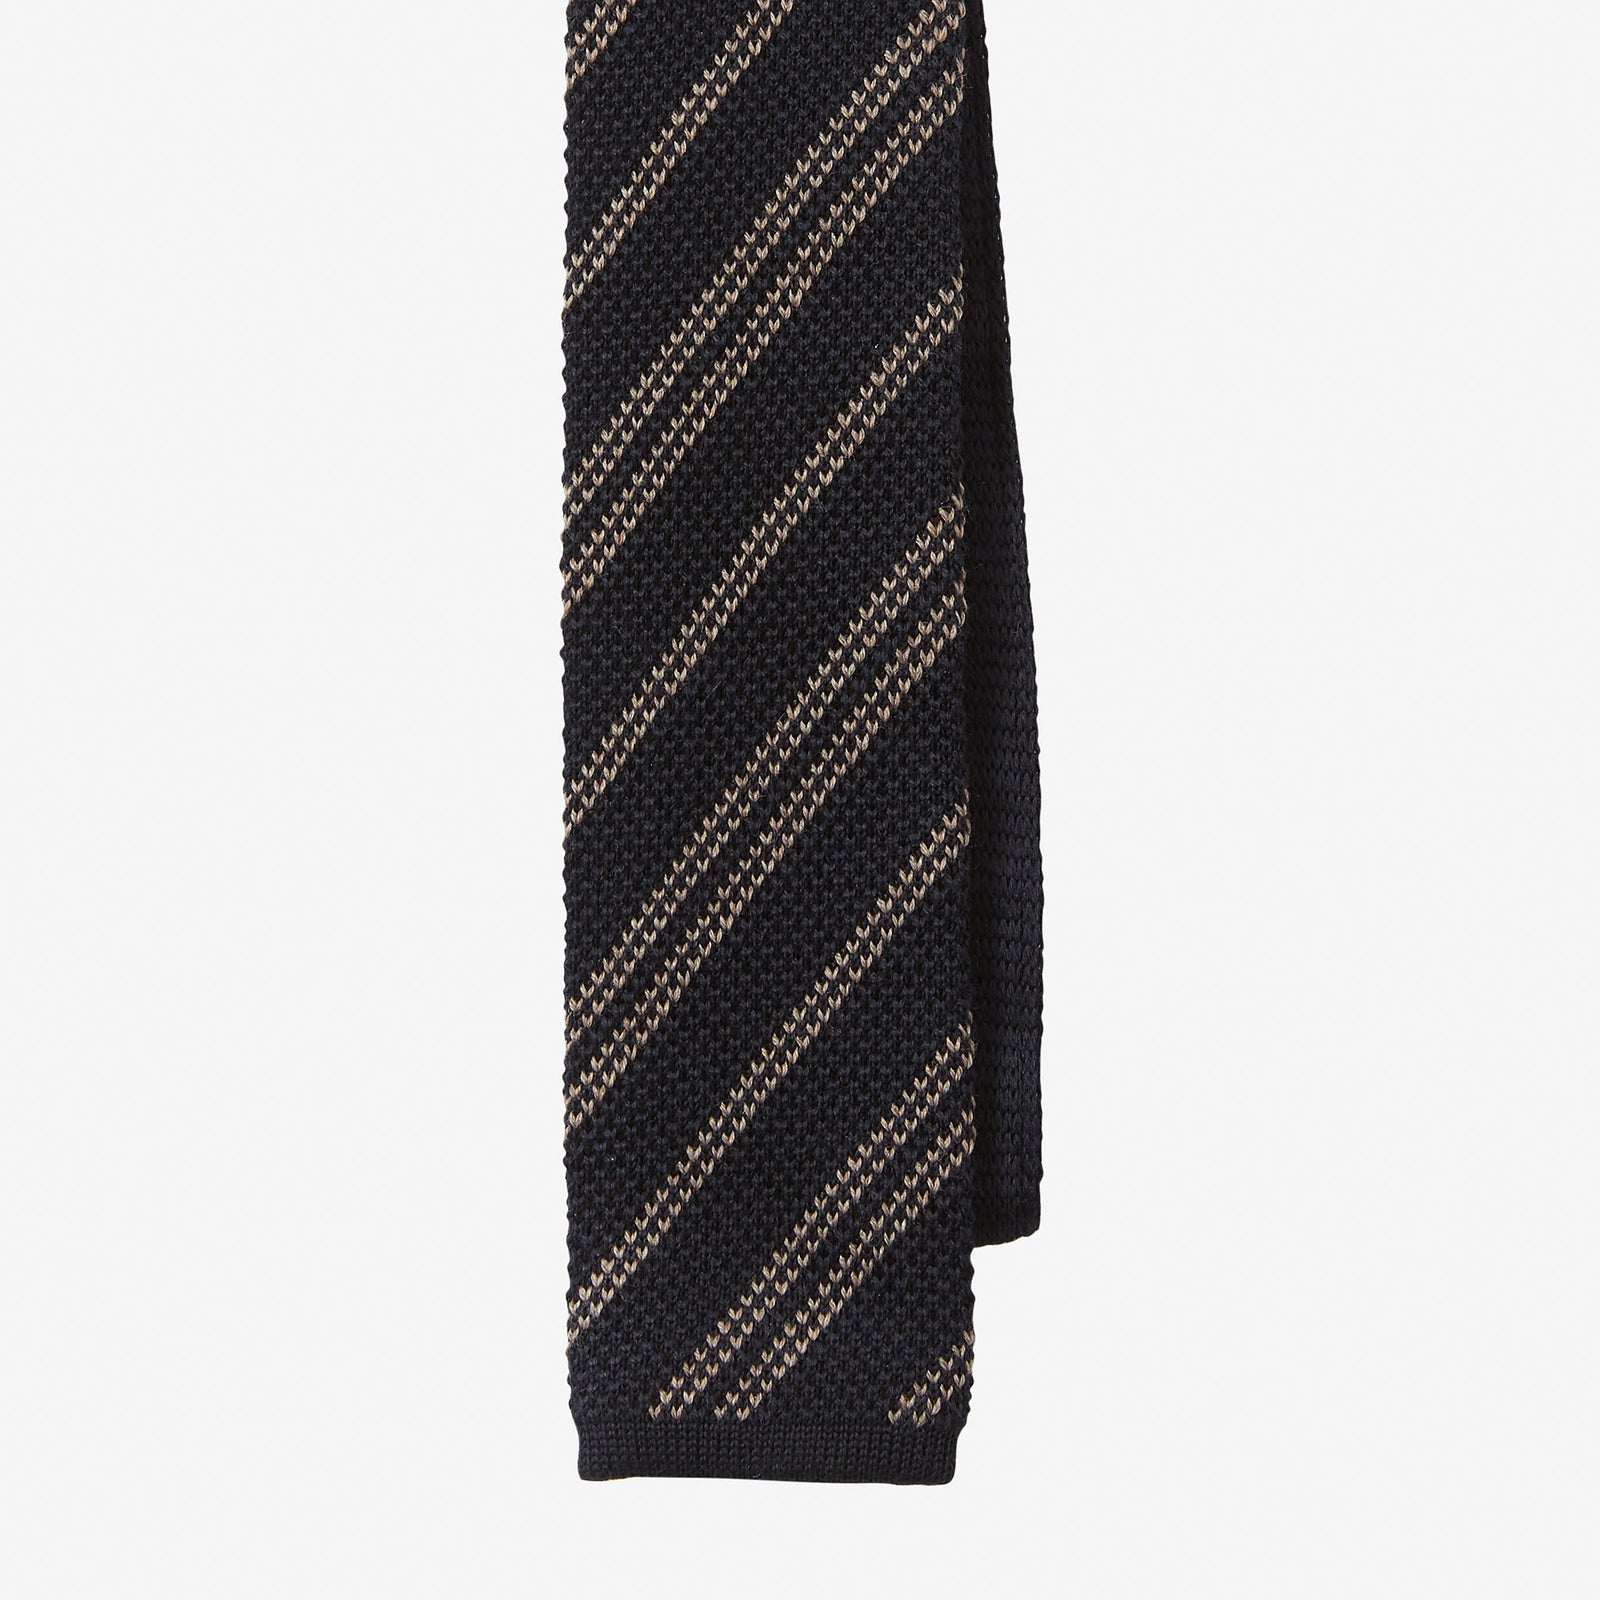 Knit Tie Wool Stripe Navy Taupe